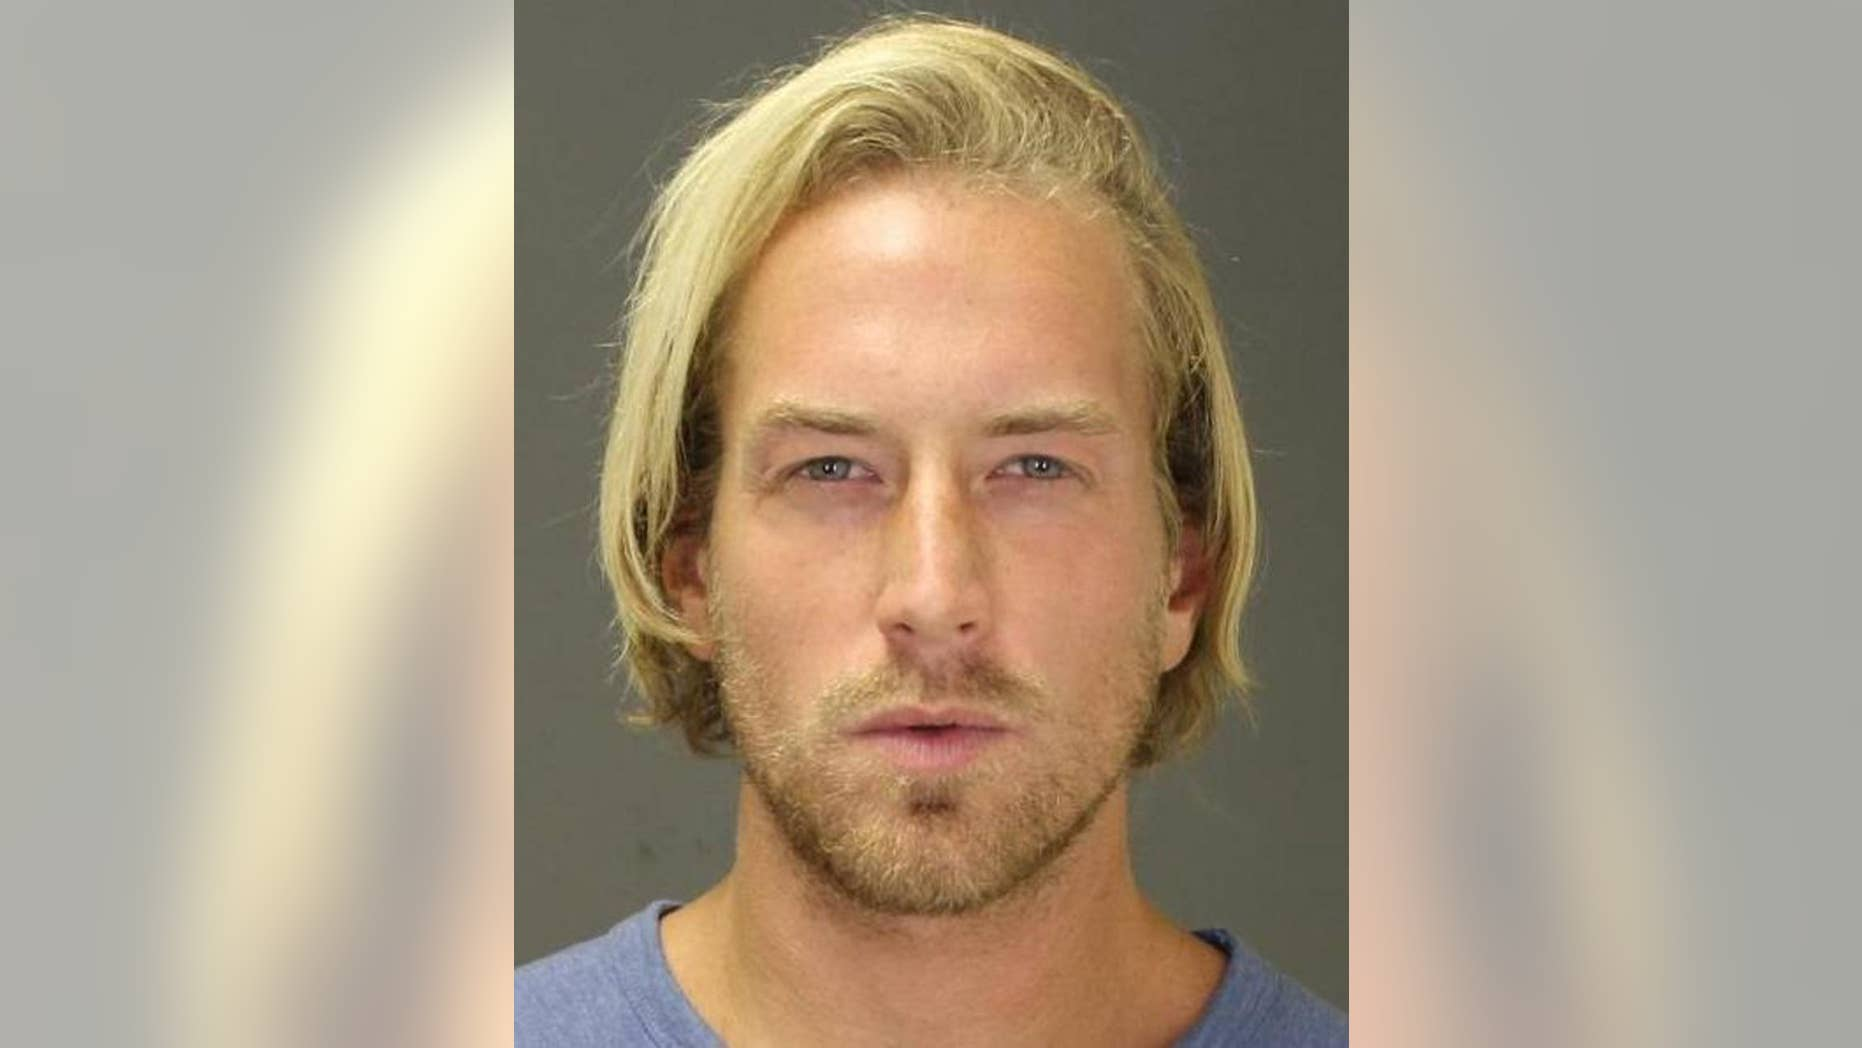 FILE - This Sept. 2014 file photo provided by the Suffolk County District Attorney's office shows Thomas Gilbert Jr., after an arrest in the town of Southampton, N.Y., on a misdemeanor charge. Gilbert's hedge-fund founder father, Thomas Gilbert Sr., was found dead on Jan. 4, 2015, and his son was arrested and accused of murder. On Thursday, Feb. 5, 2015 Gilbert appeared in court in New York and pleaded not guilty to the charges. (AP Photo/Suffolk County District Attorney's office, File)